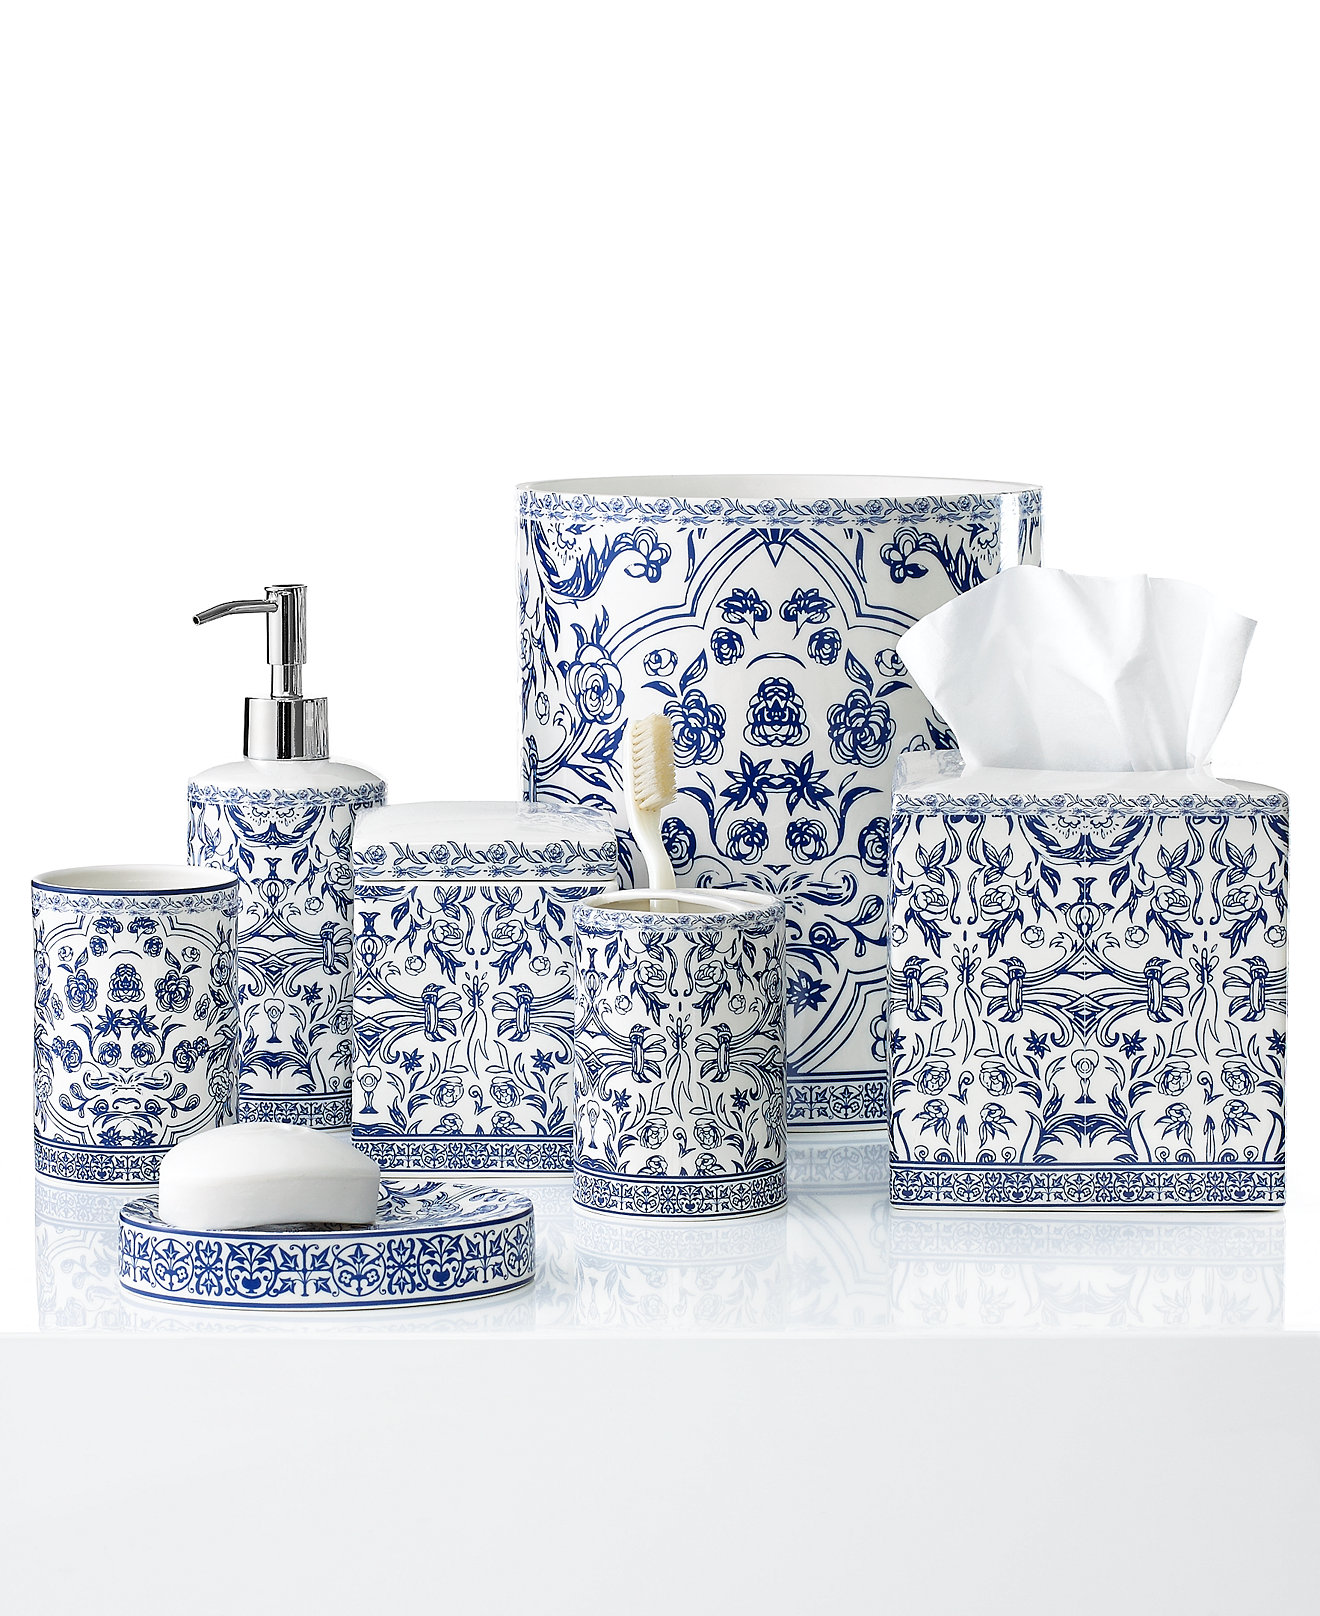 Blue and white porcelain bathroom accessories - Kassatex Bath Accessories Orsay Collection Bathroom Accessories